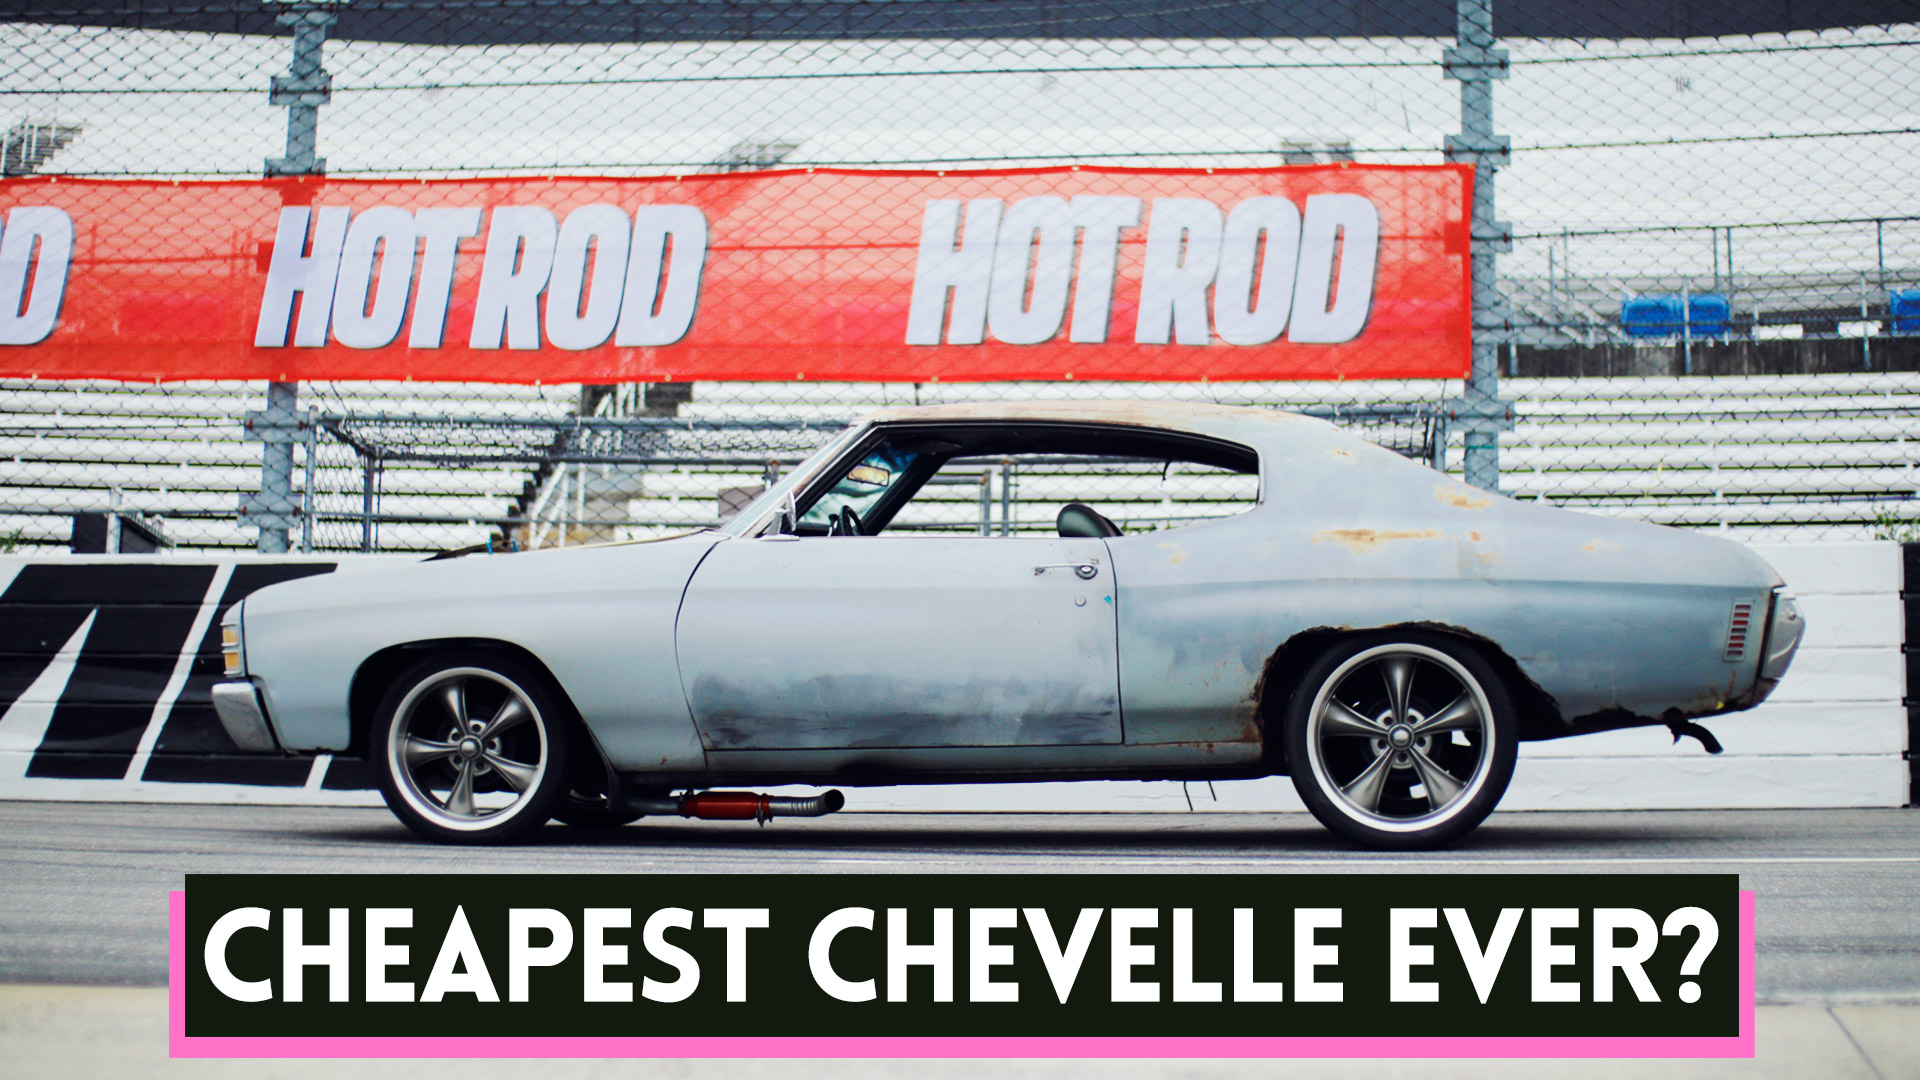 Cheap Muscle Cars: How Much Did Our Chevy Chevelle Cost?